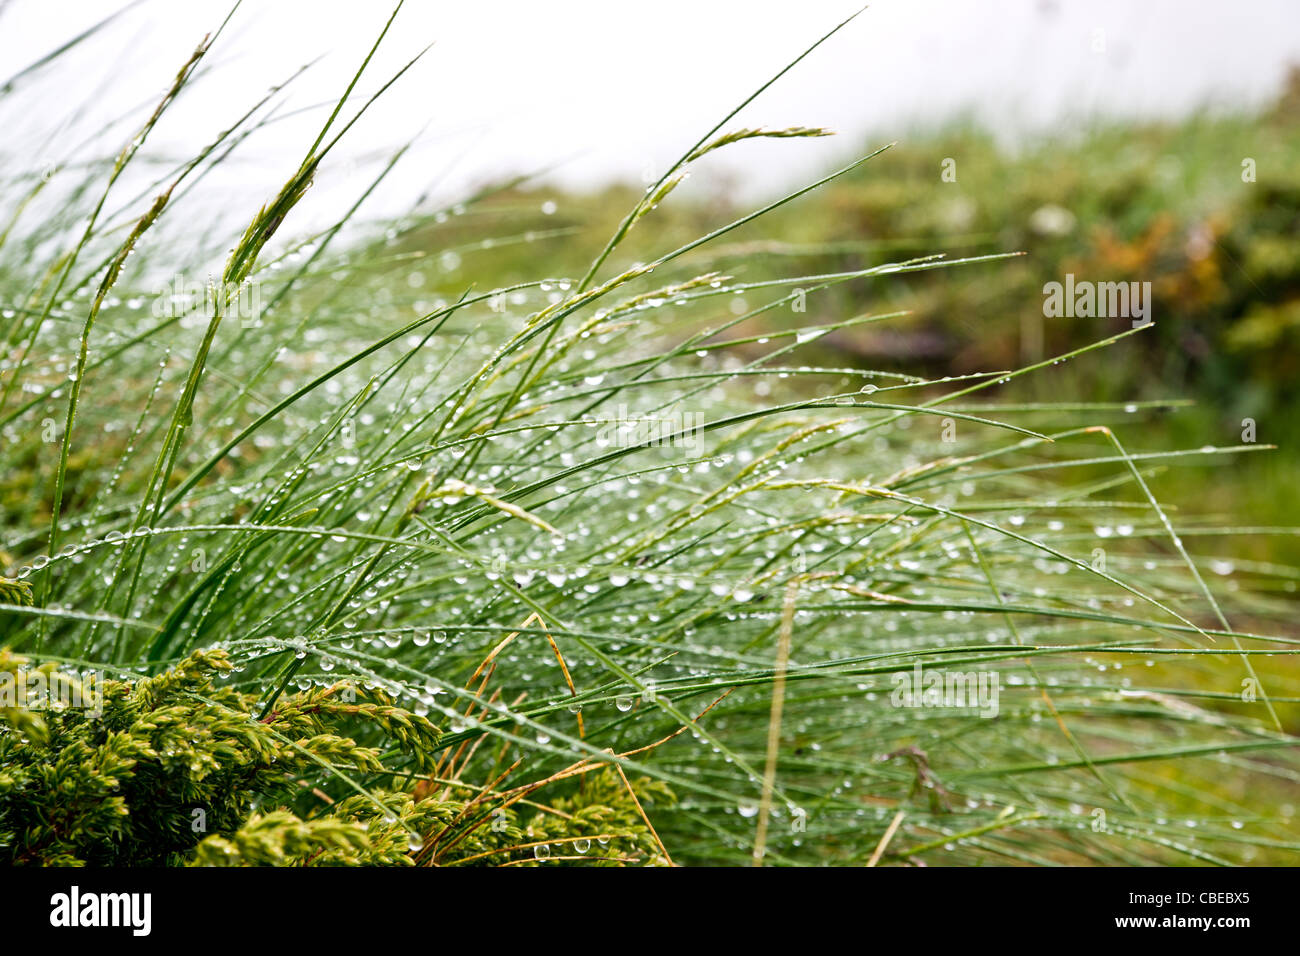 Drops of dew on blades of grass - Stock Image